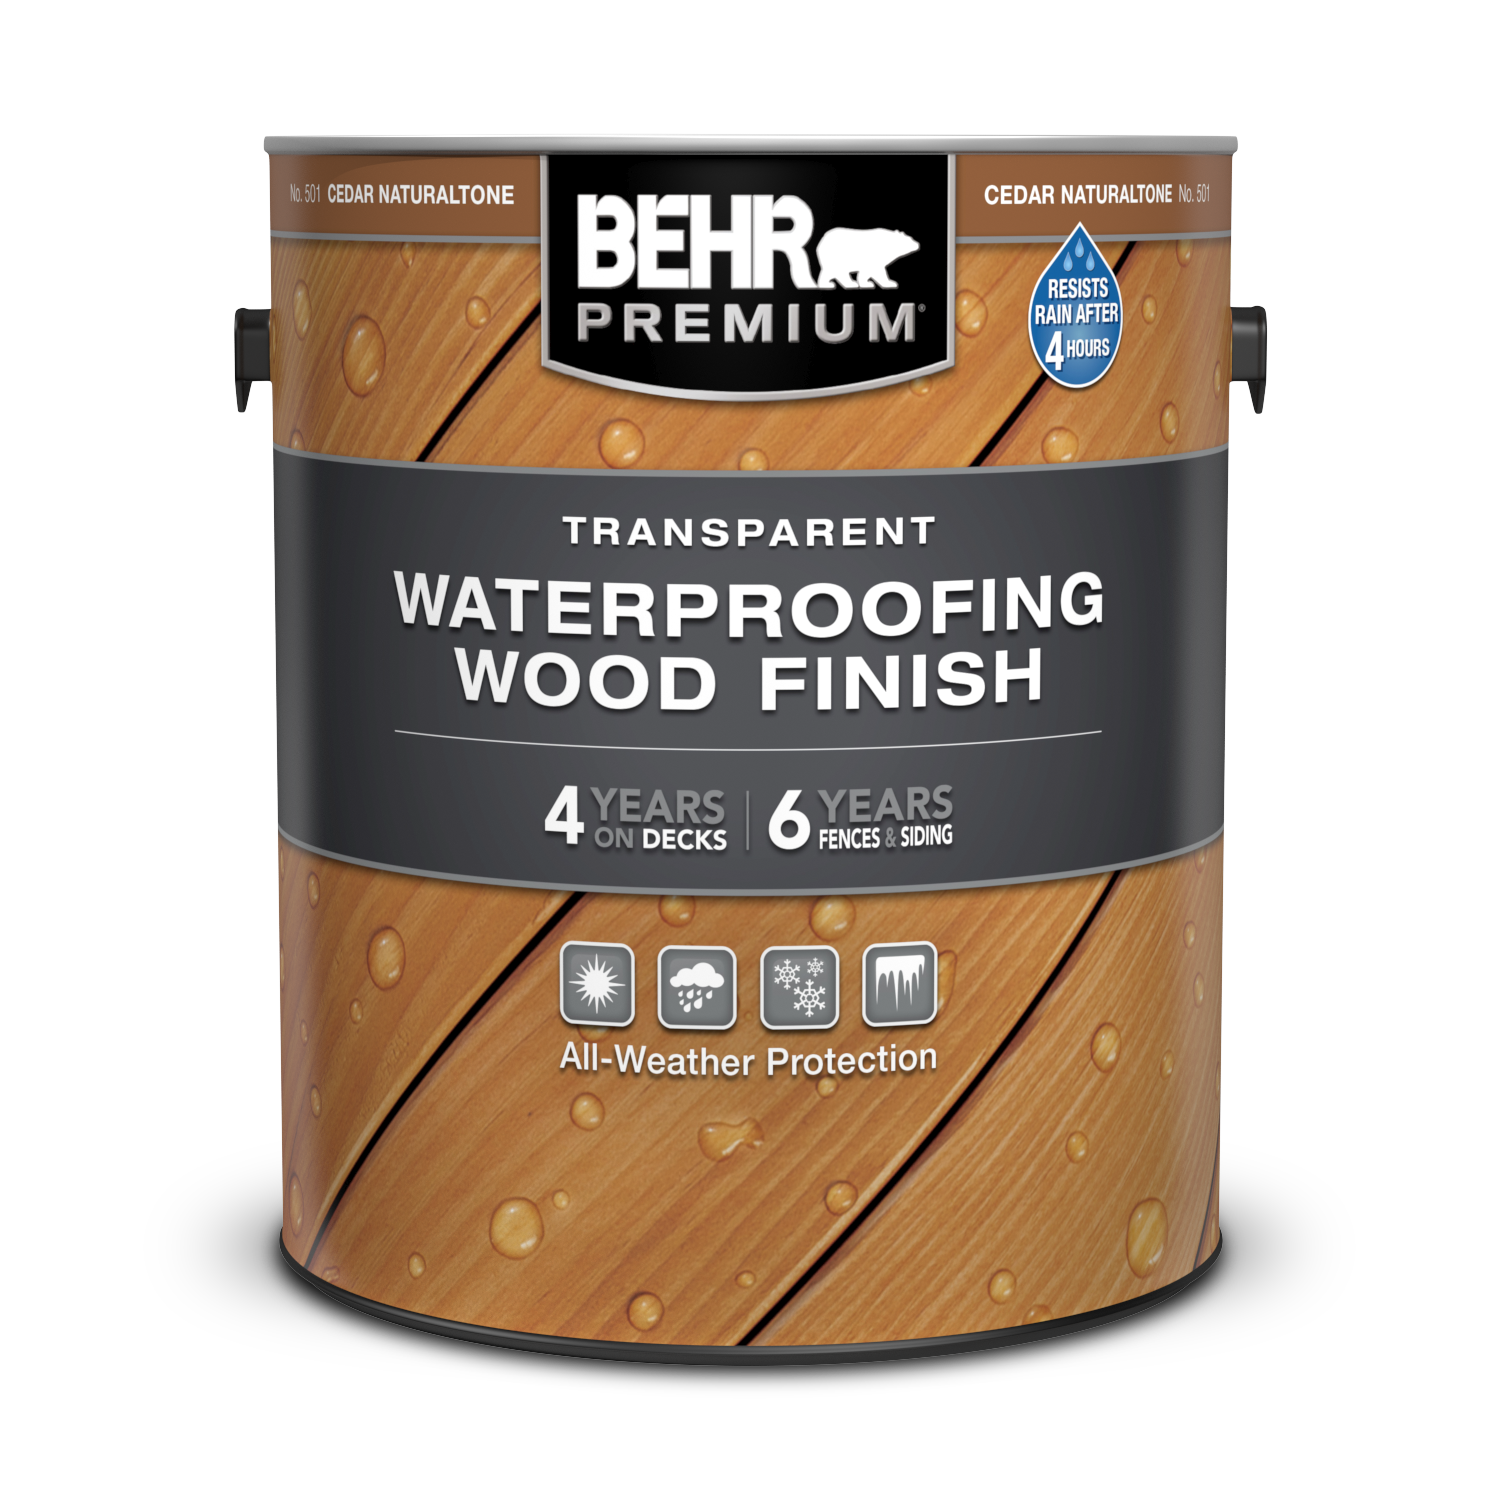 Transpa Waterproofing Wood Finish